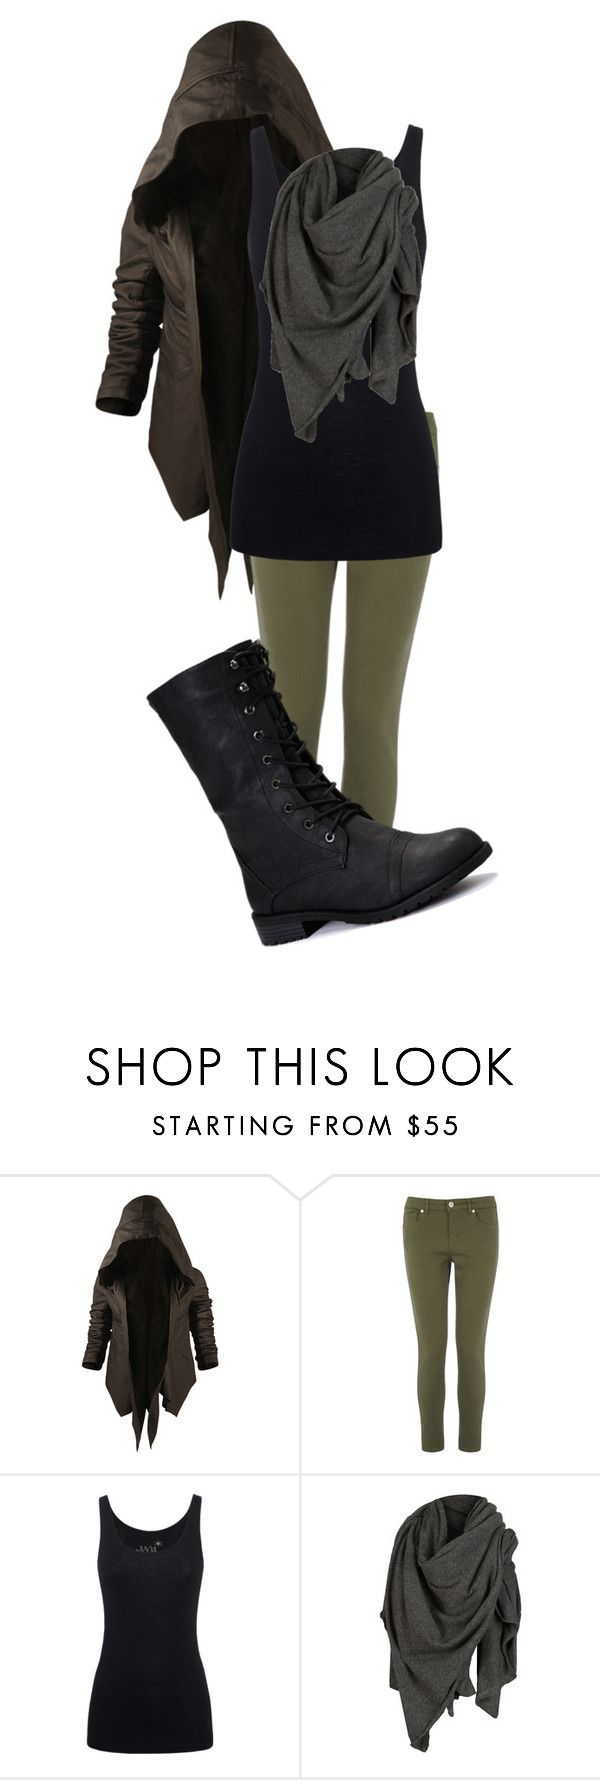 """female Robin hood"" by chantry-joy ❤ liked on Polyvore featuring Nicholas K, Warehouse, Juvia, AllSaints and Nature Breeze"